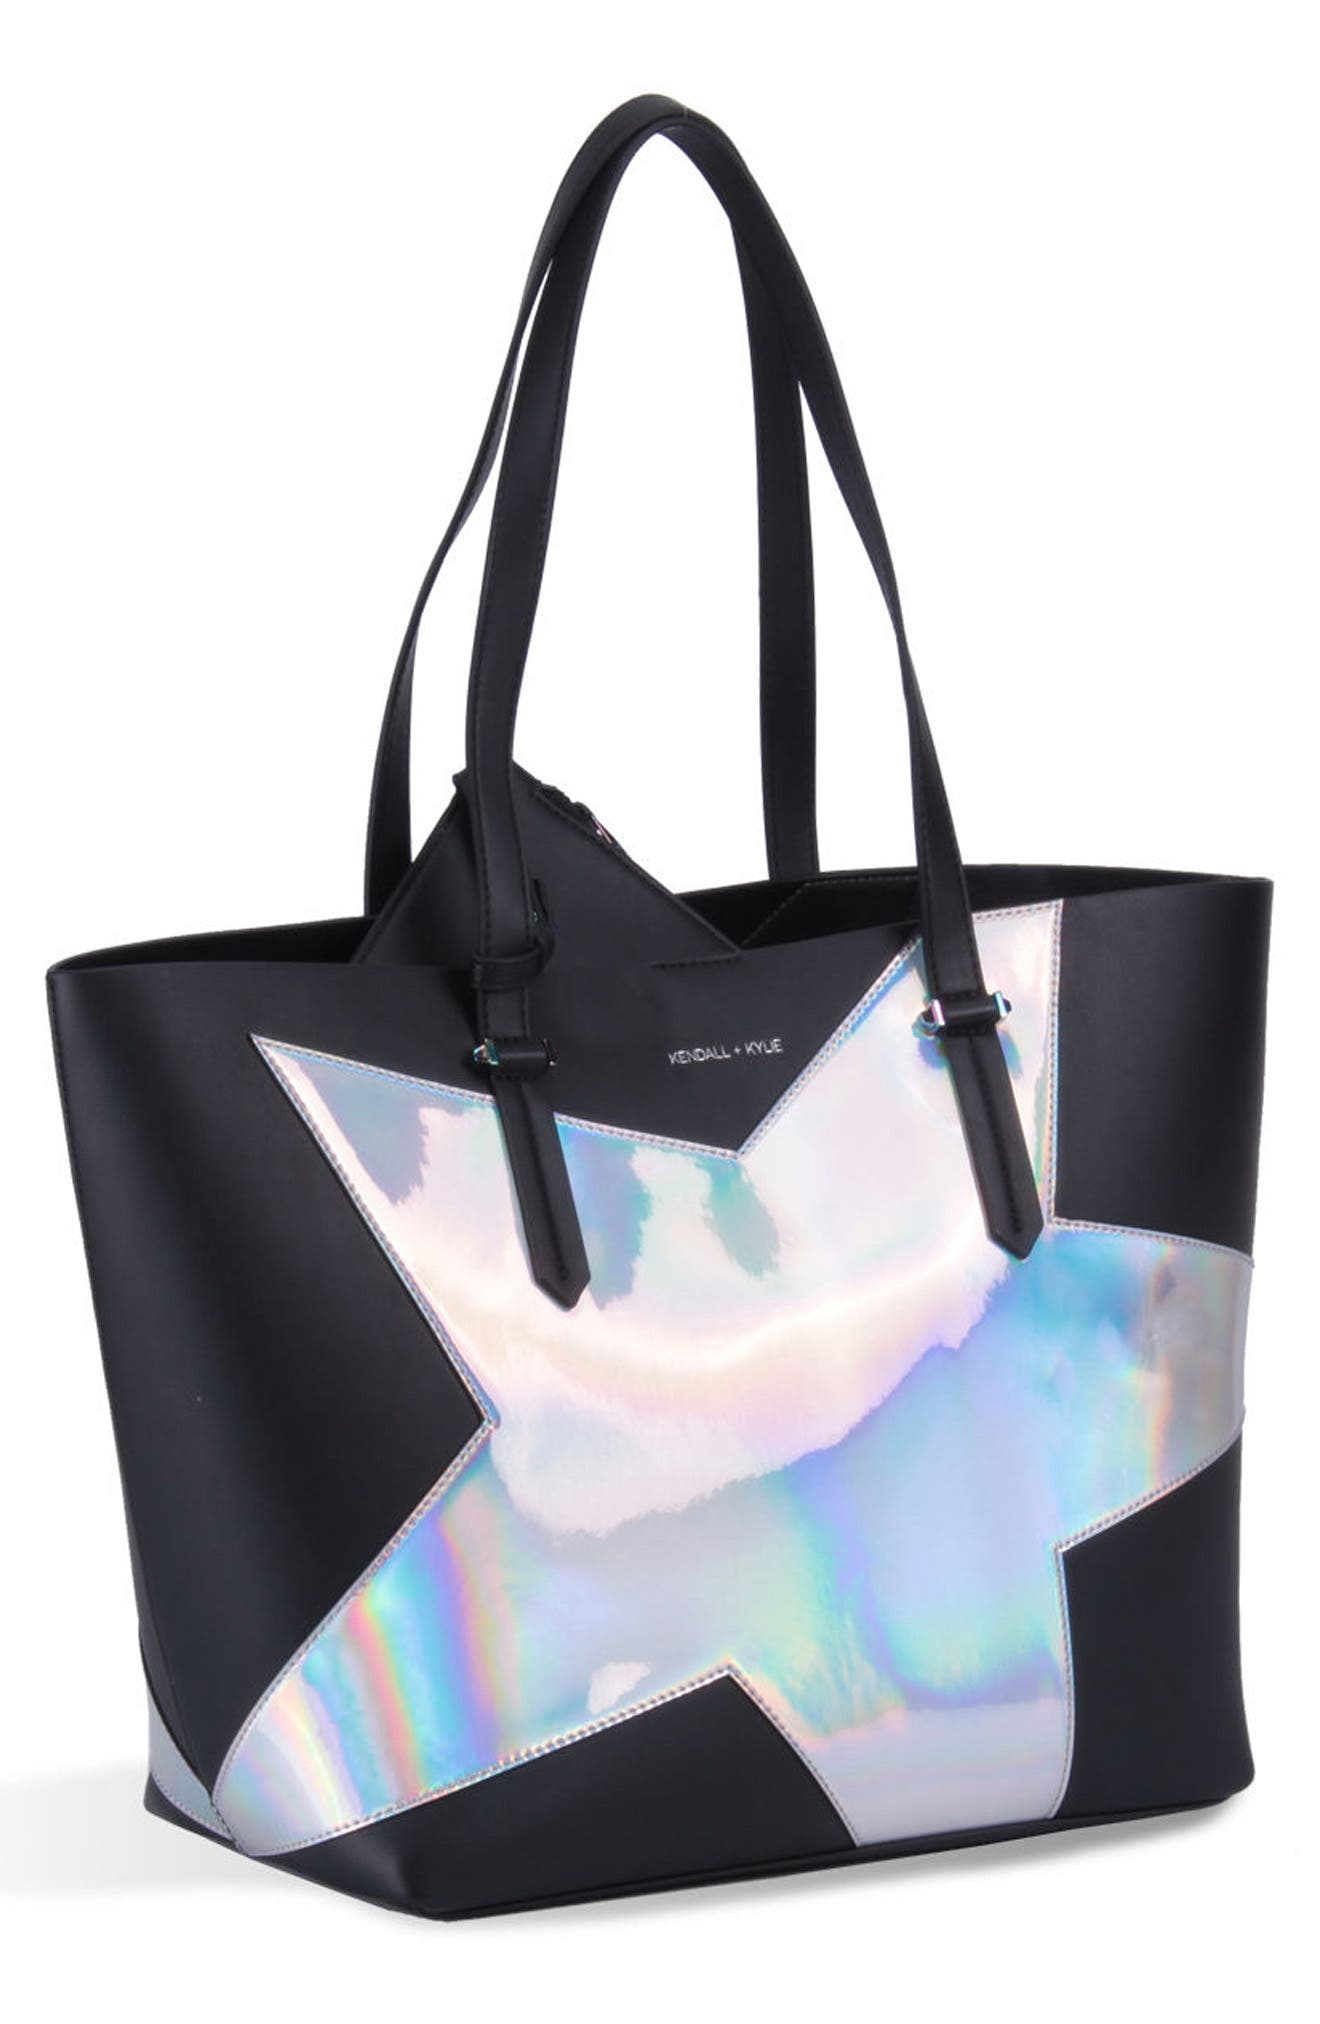 Izzy Star Tote,                         Main,                         color, Black/ Silver Iridescent